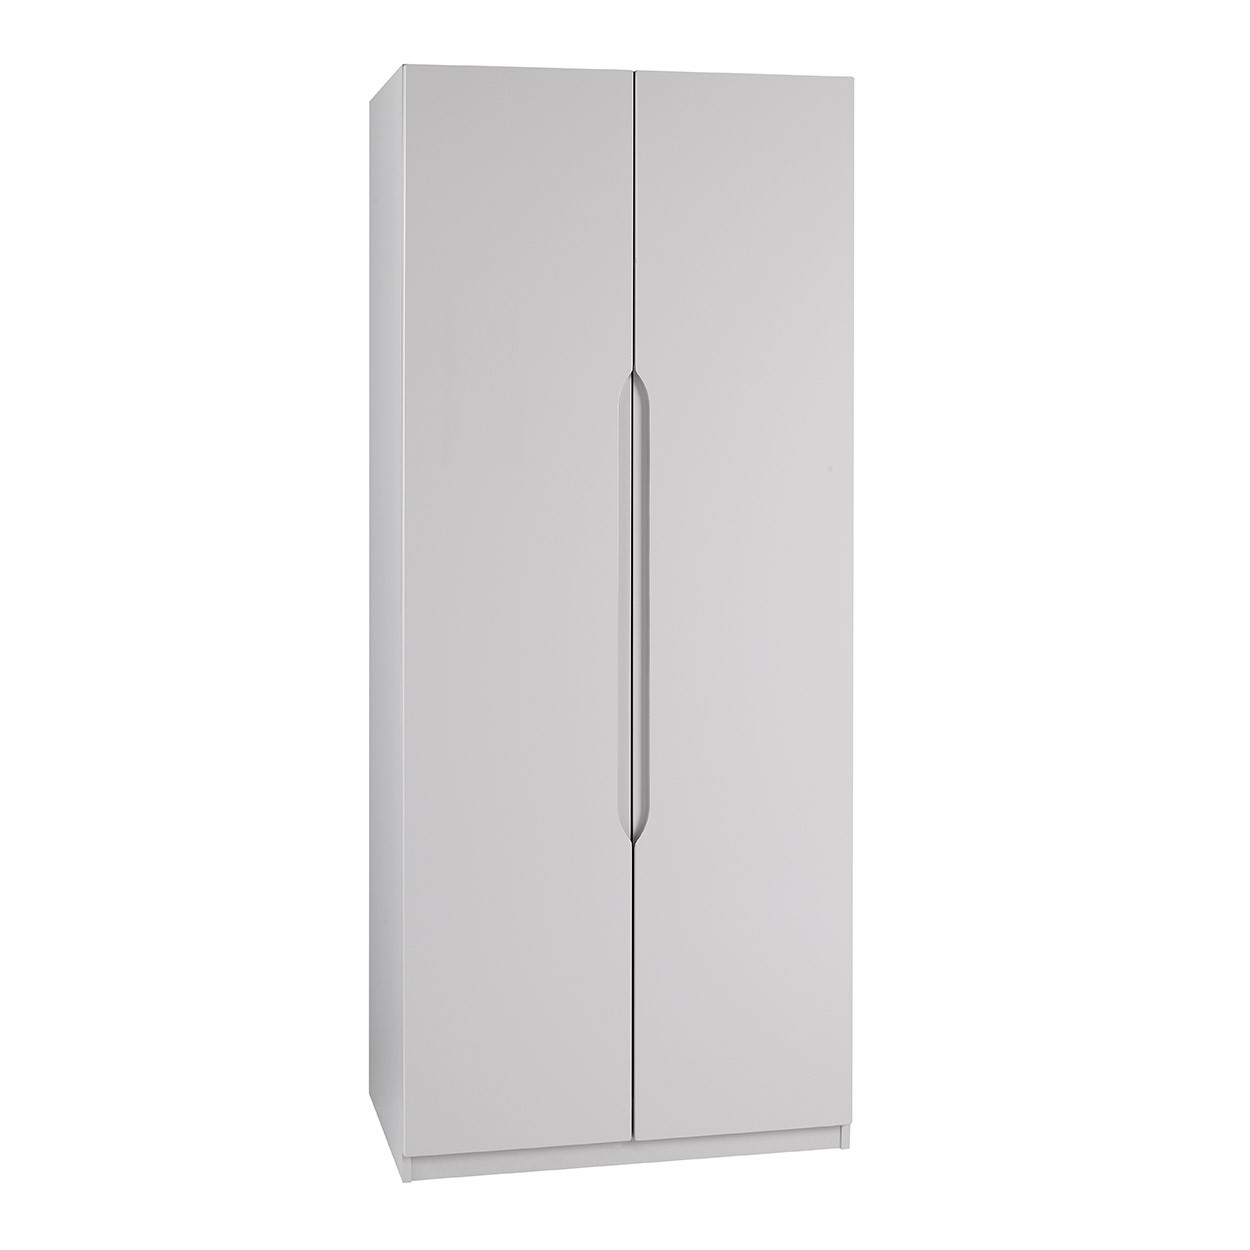 Cashmere Grey High Gloss 2 Door Extra Tall Wardrobe